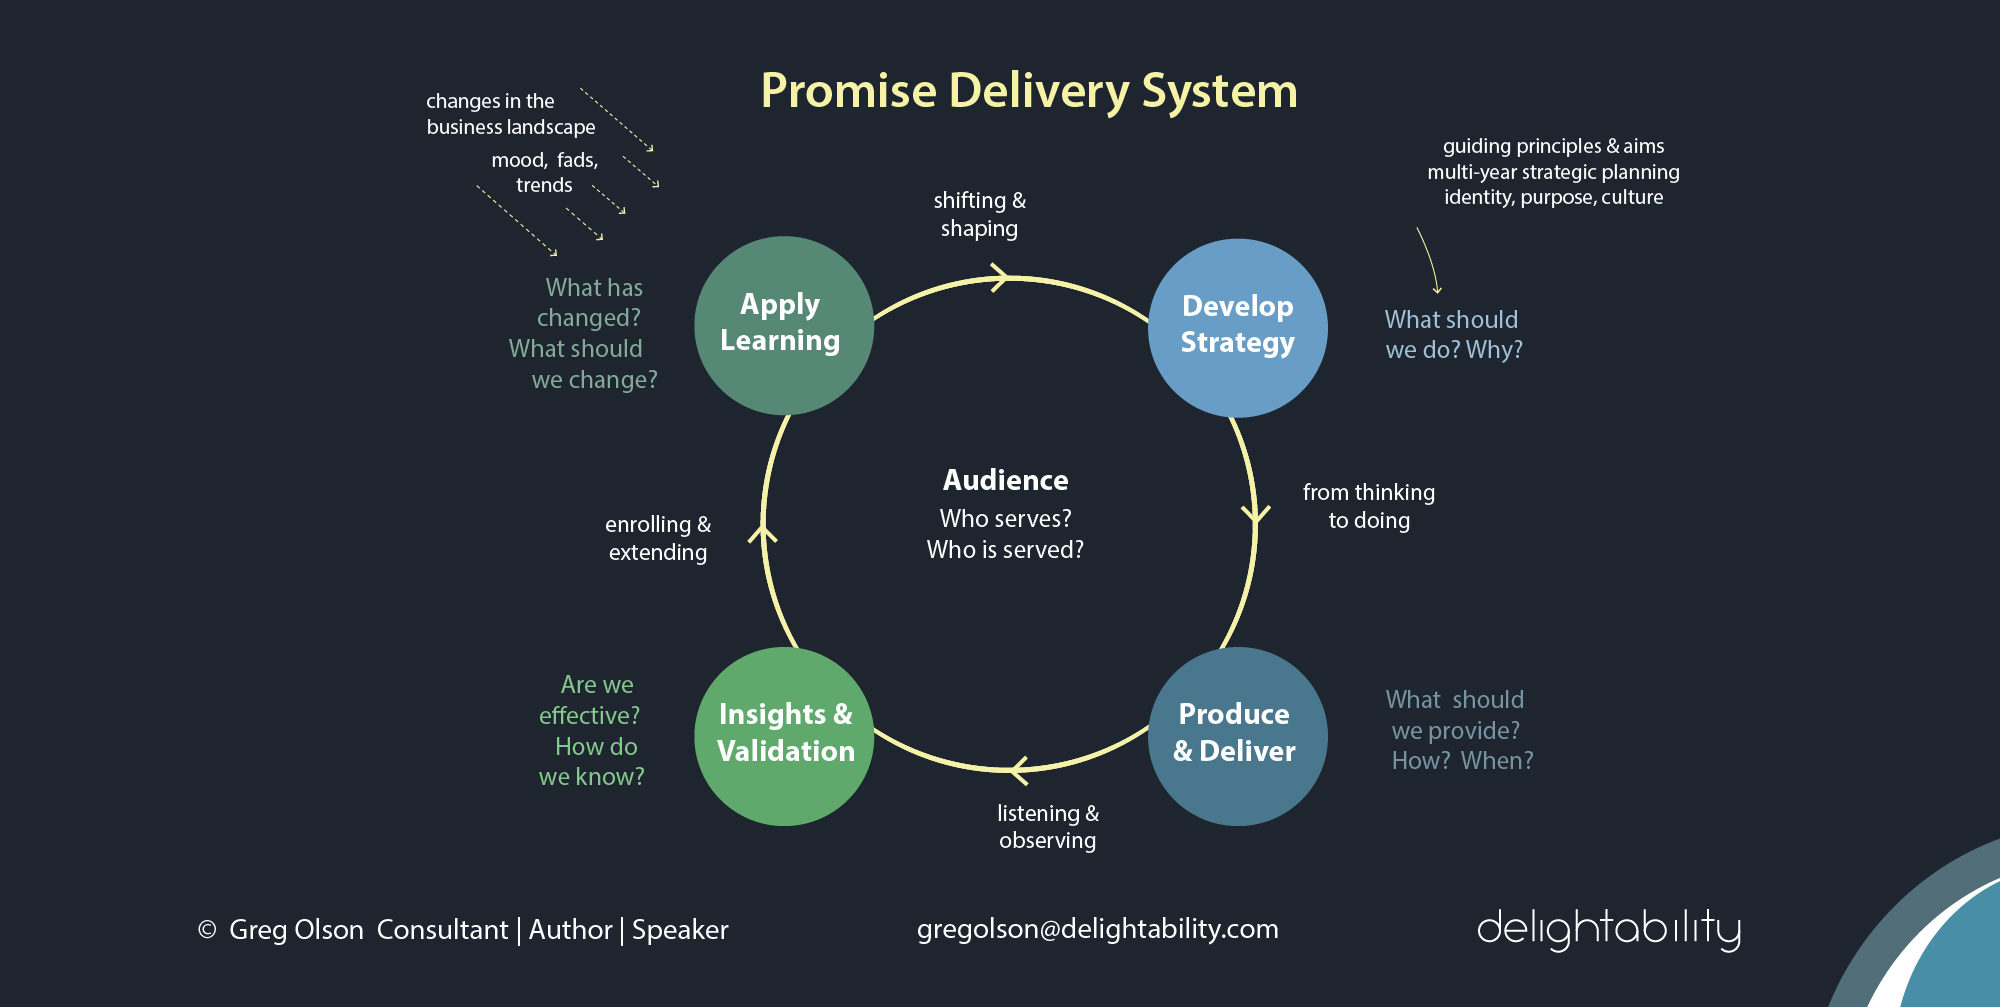 Promise delivery system delightability image of promise delivery system from gregory olson delightability consultant and author of the experience malvernweather Choice Image